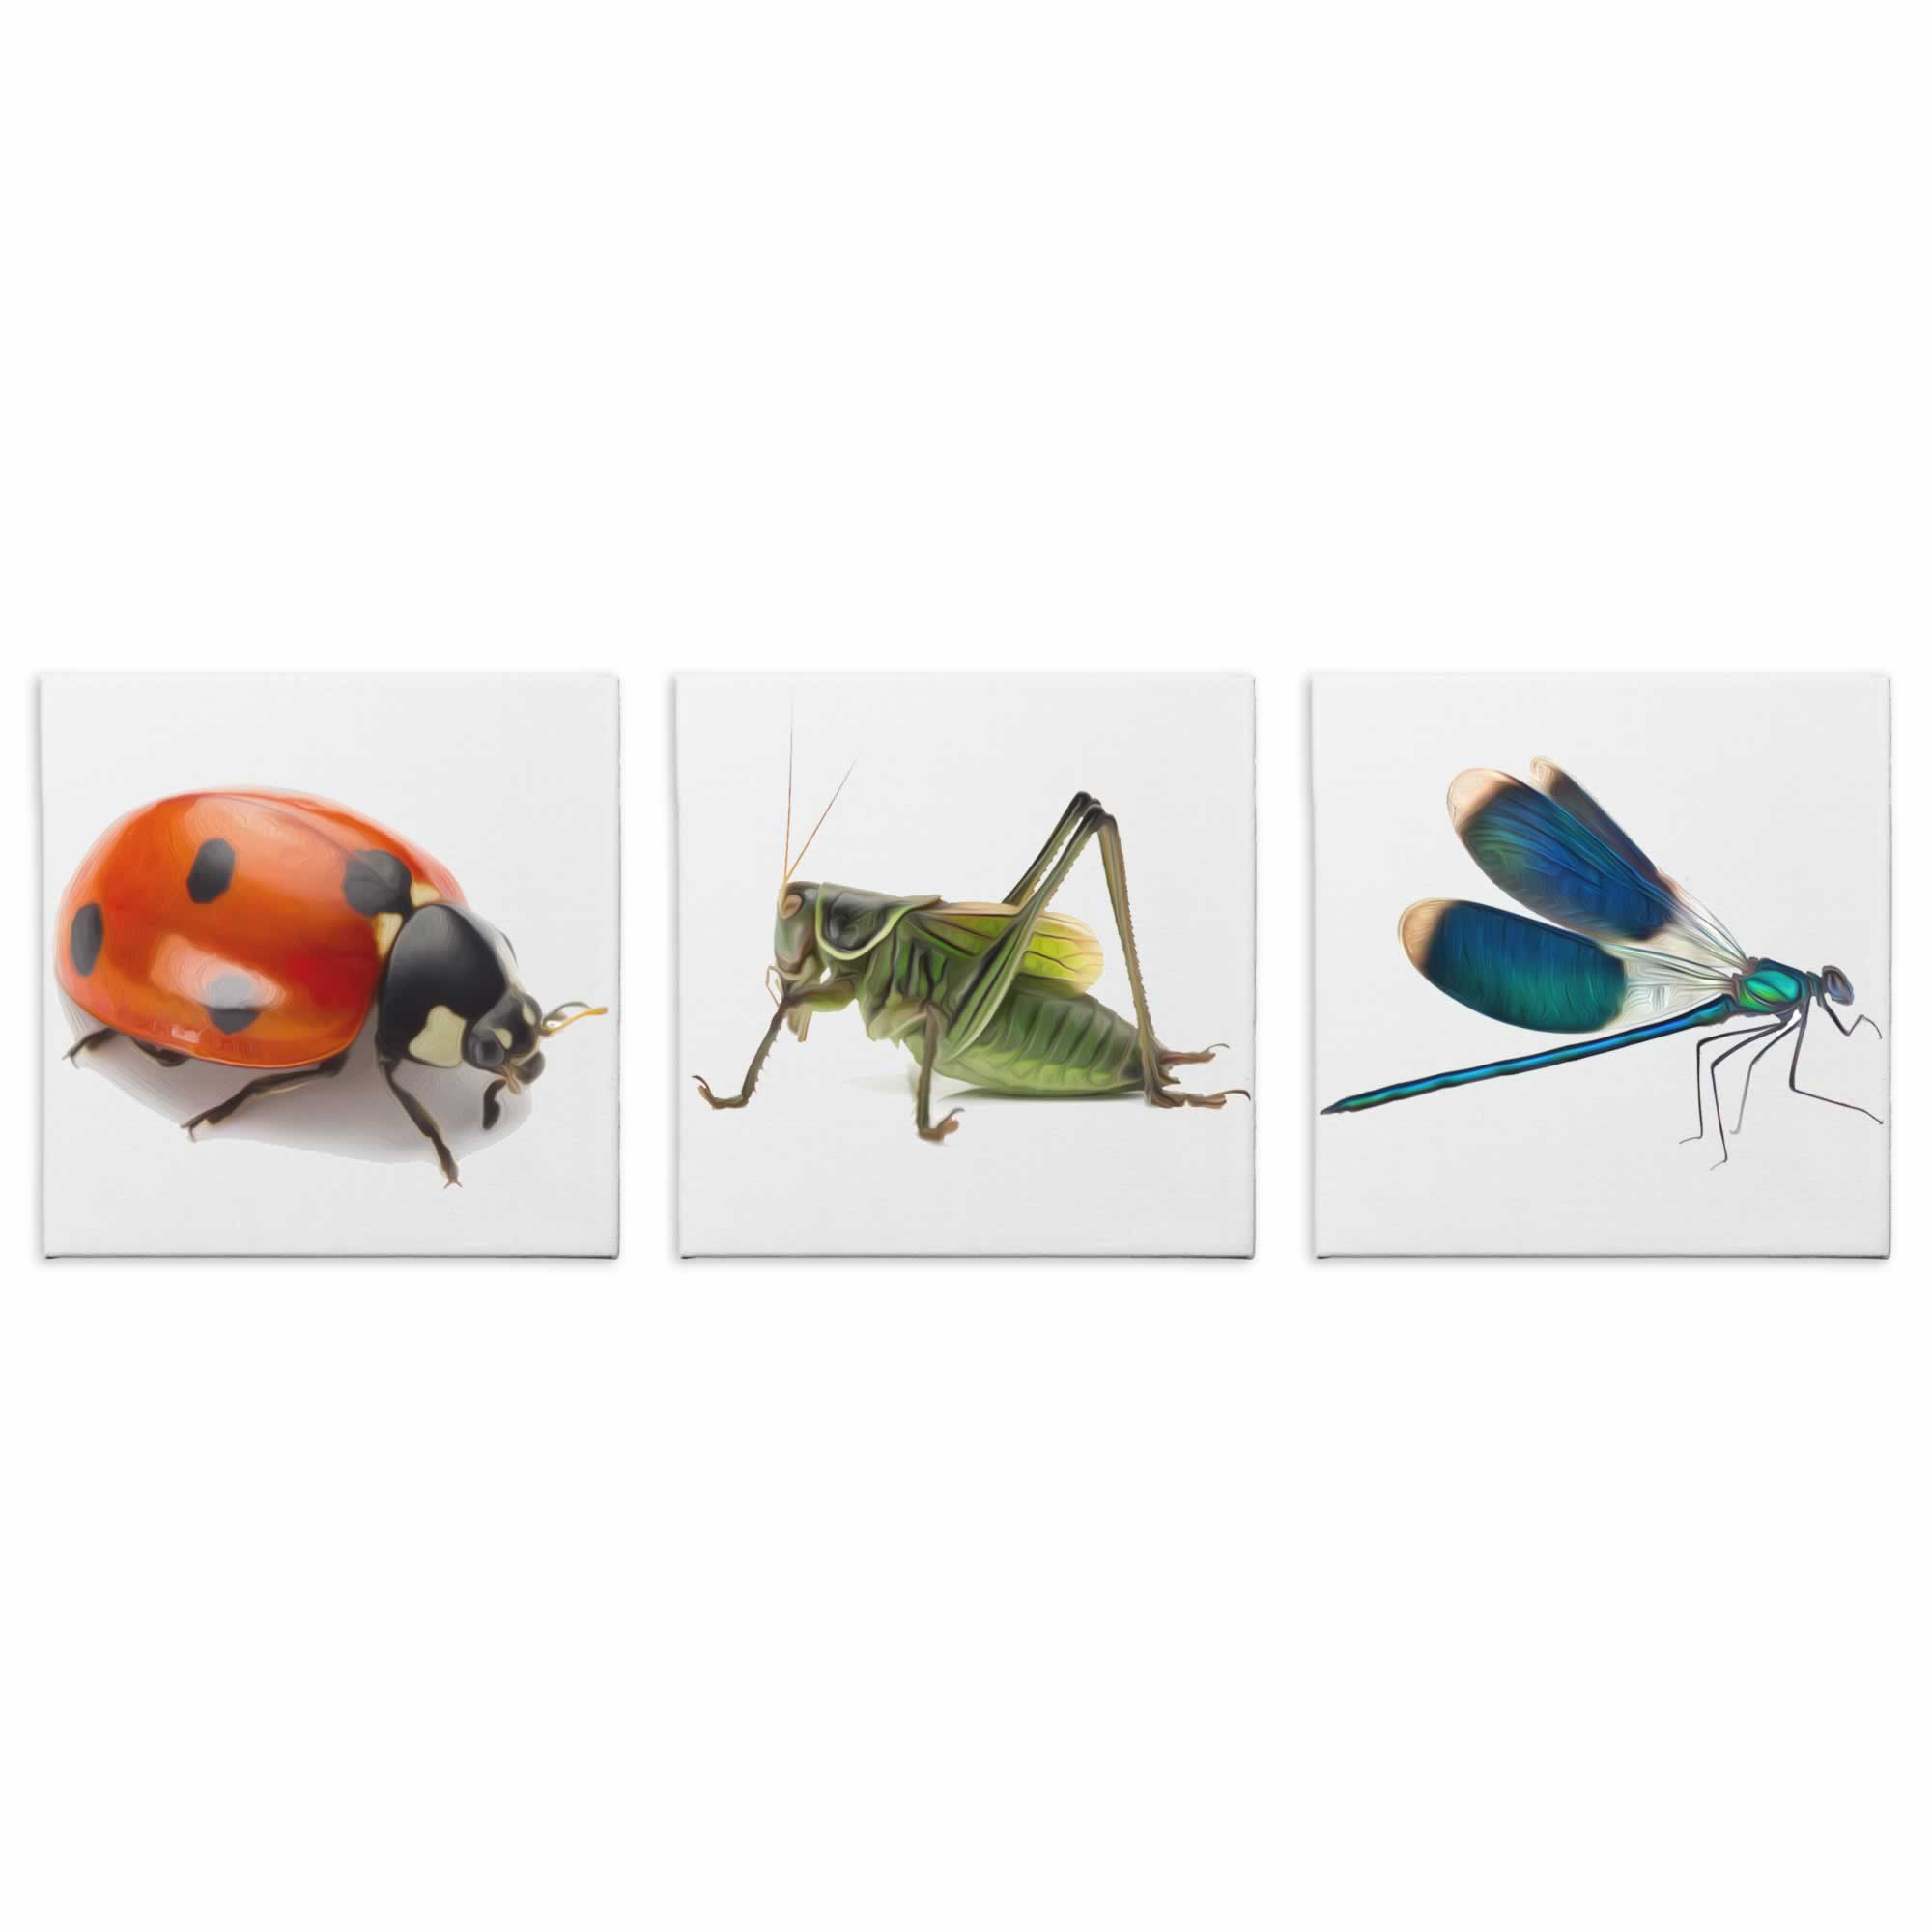 Backyard Bugs - Contemporary giclee Painting Print on Canvas